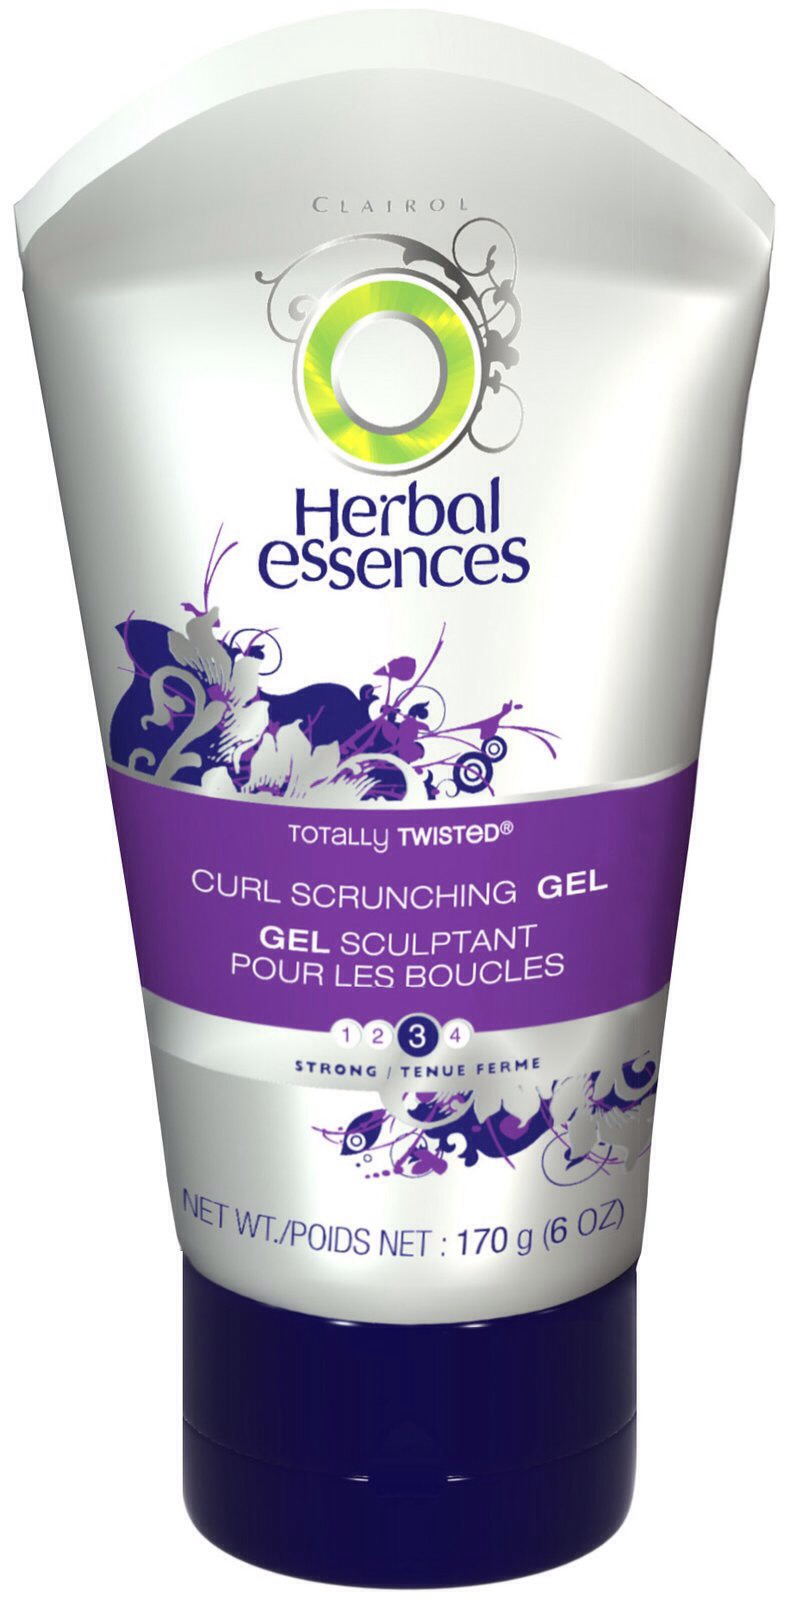 Next squeeze about 2 pumps of gel into the rest of the mixture.👍 herbal essences Curl  scrunching gel is my favorite!